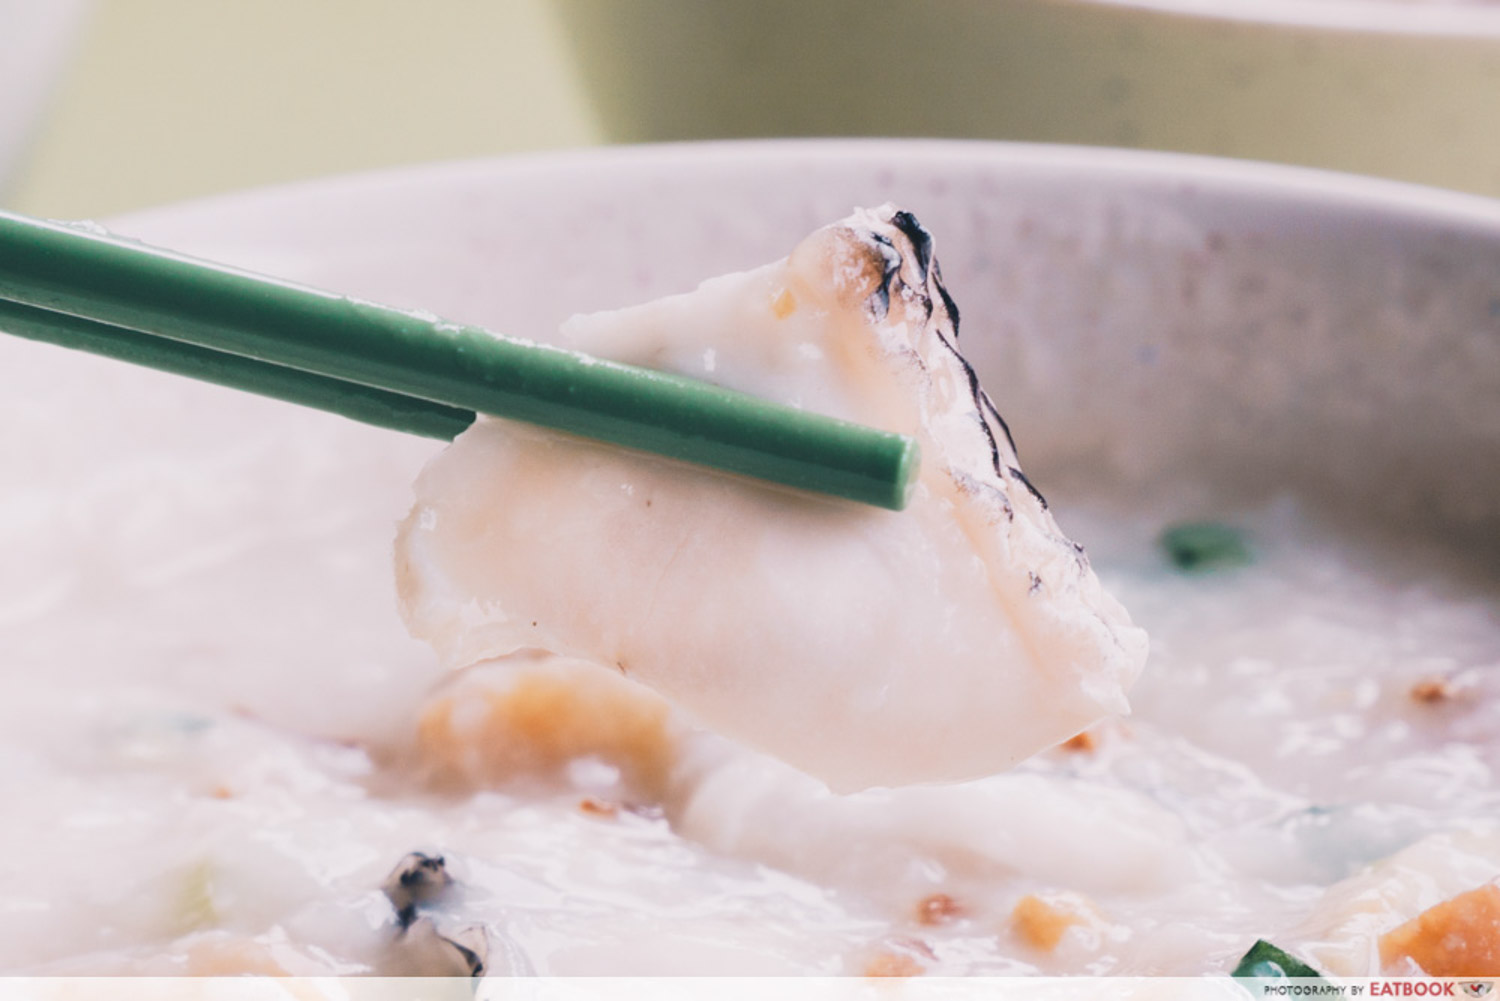 Weng Kiang Kee Porridge - Sliced fish